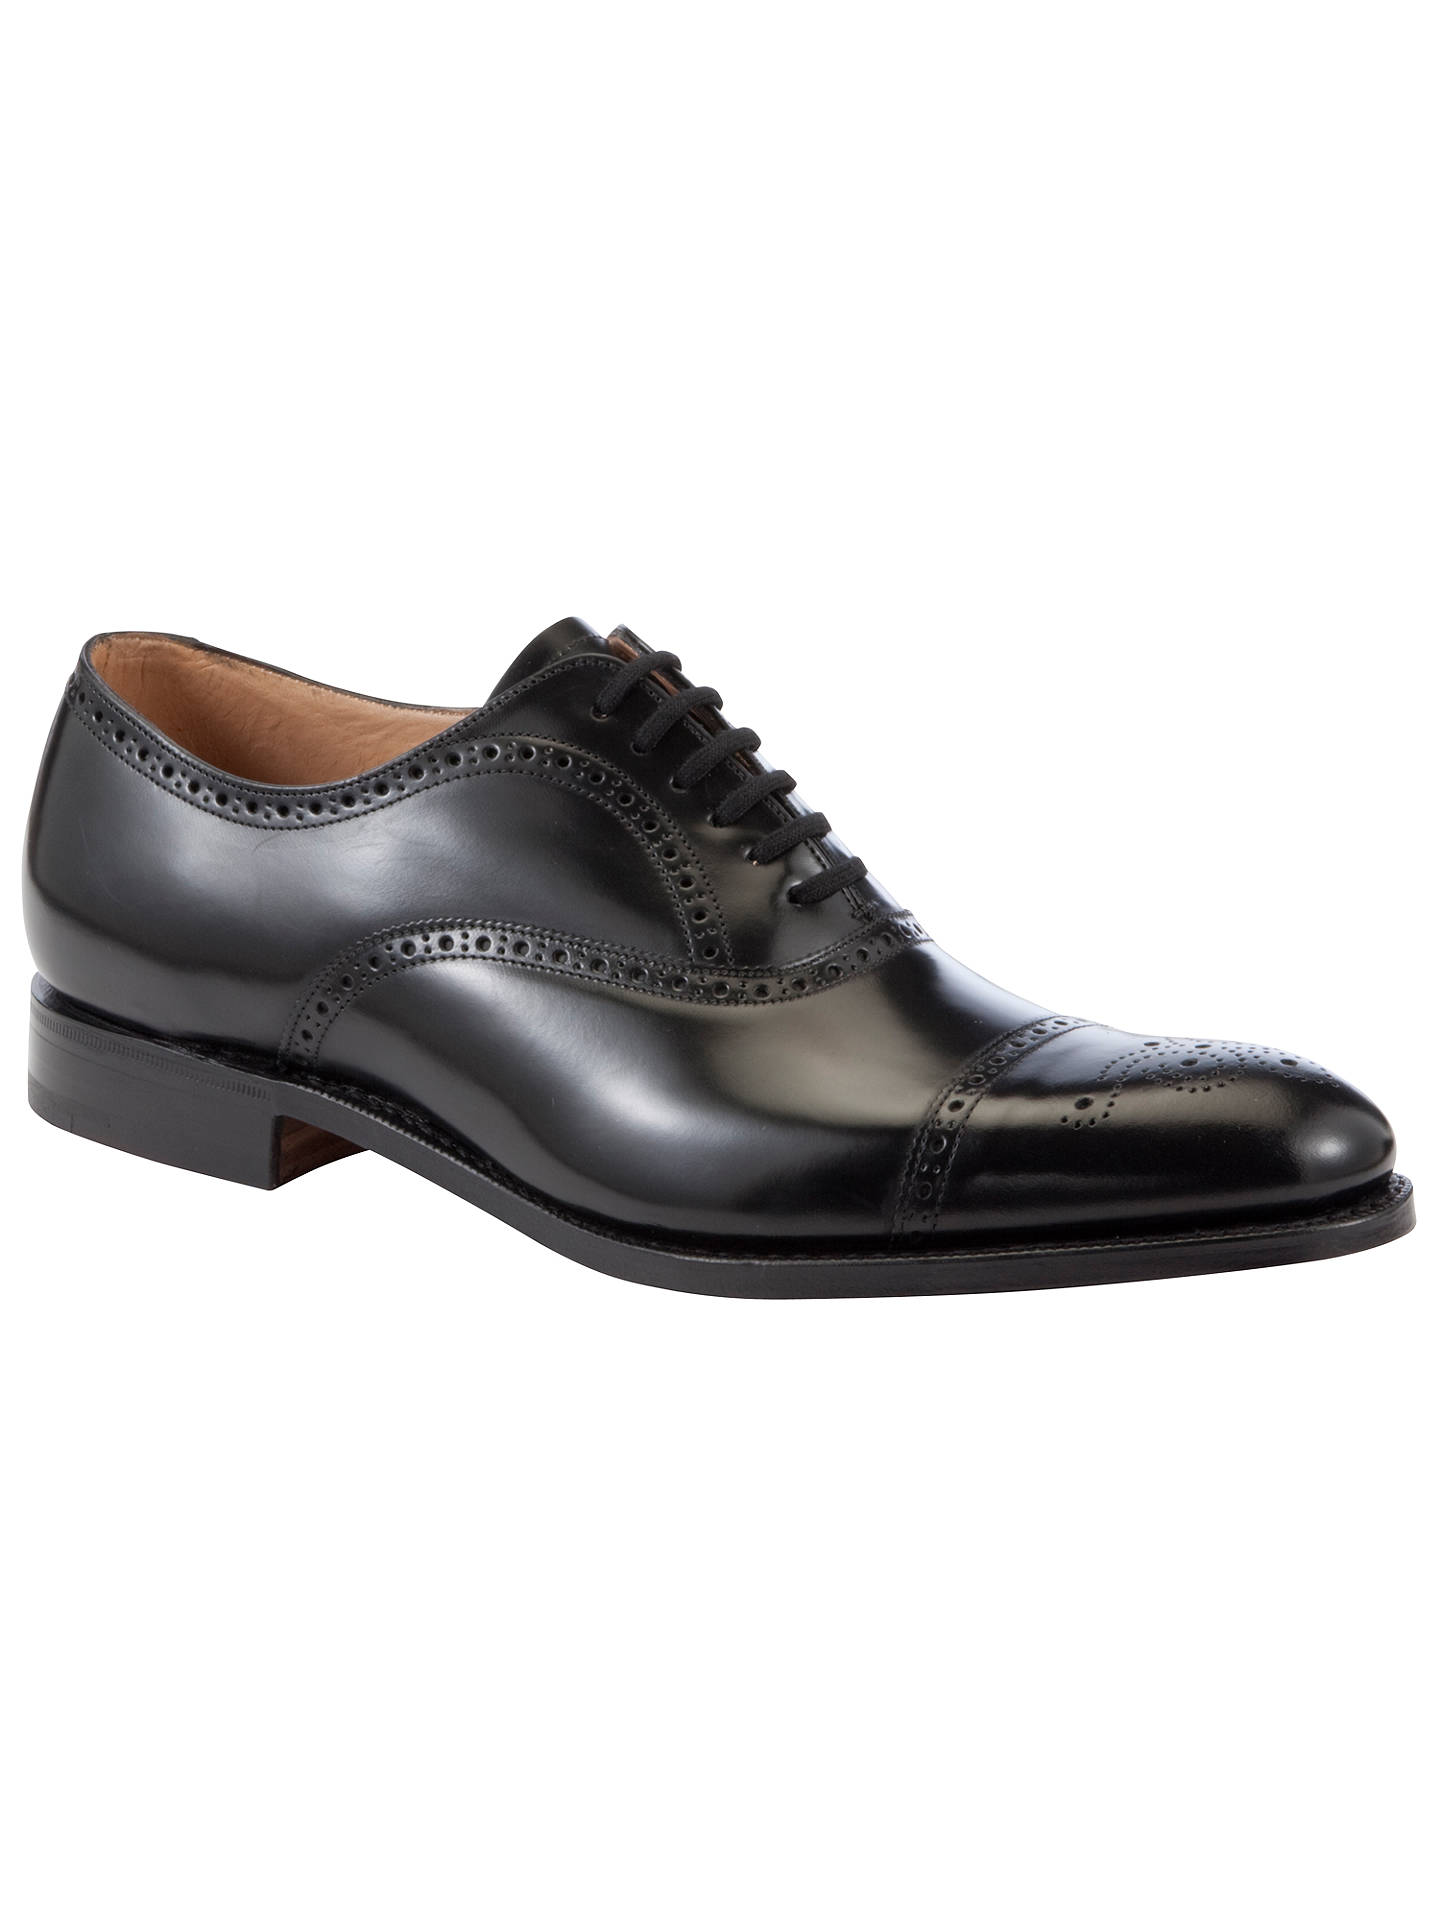 512c3200db27c4 Church s London Goodyear Welt Brogue Oxford Shoes at John Lewis ...